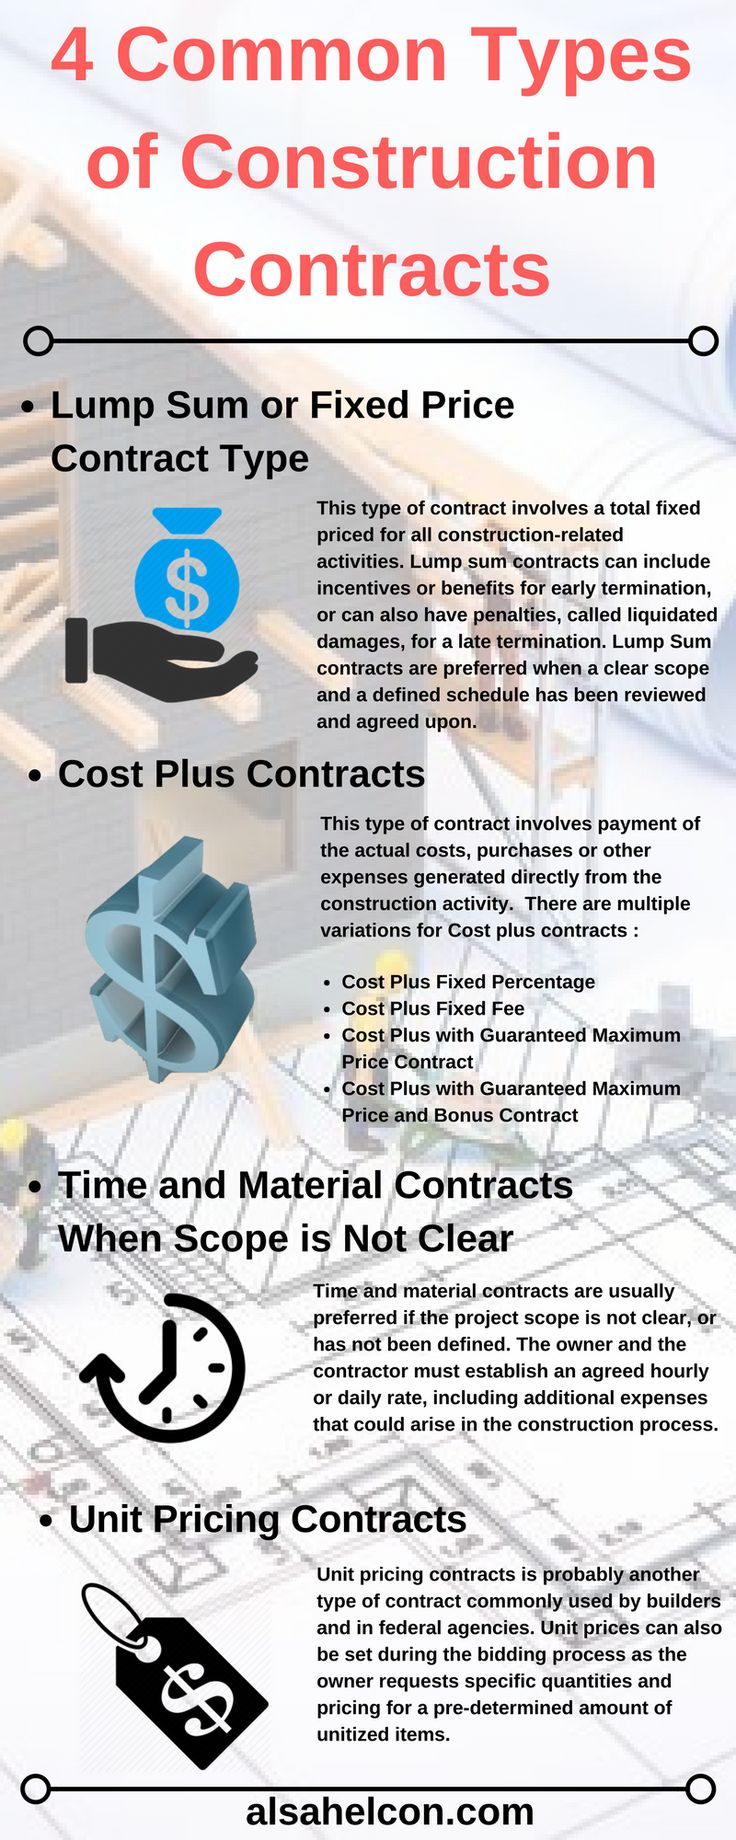 Aconstruction contractprovides a legal binding agreement,for both the owner and the builder,that the executed job will receive the specific amount of compensation or how the compensation will be distributed. There are several types of construction contracts used in the industry, but there are certain types of construction contracts preferred by construction professionals.